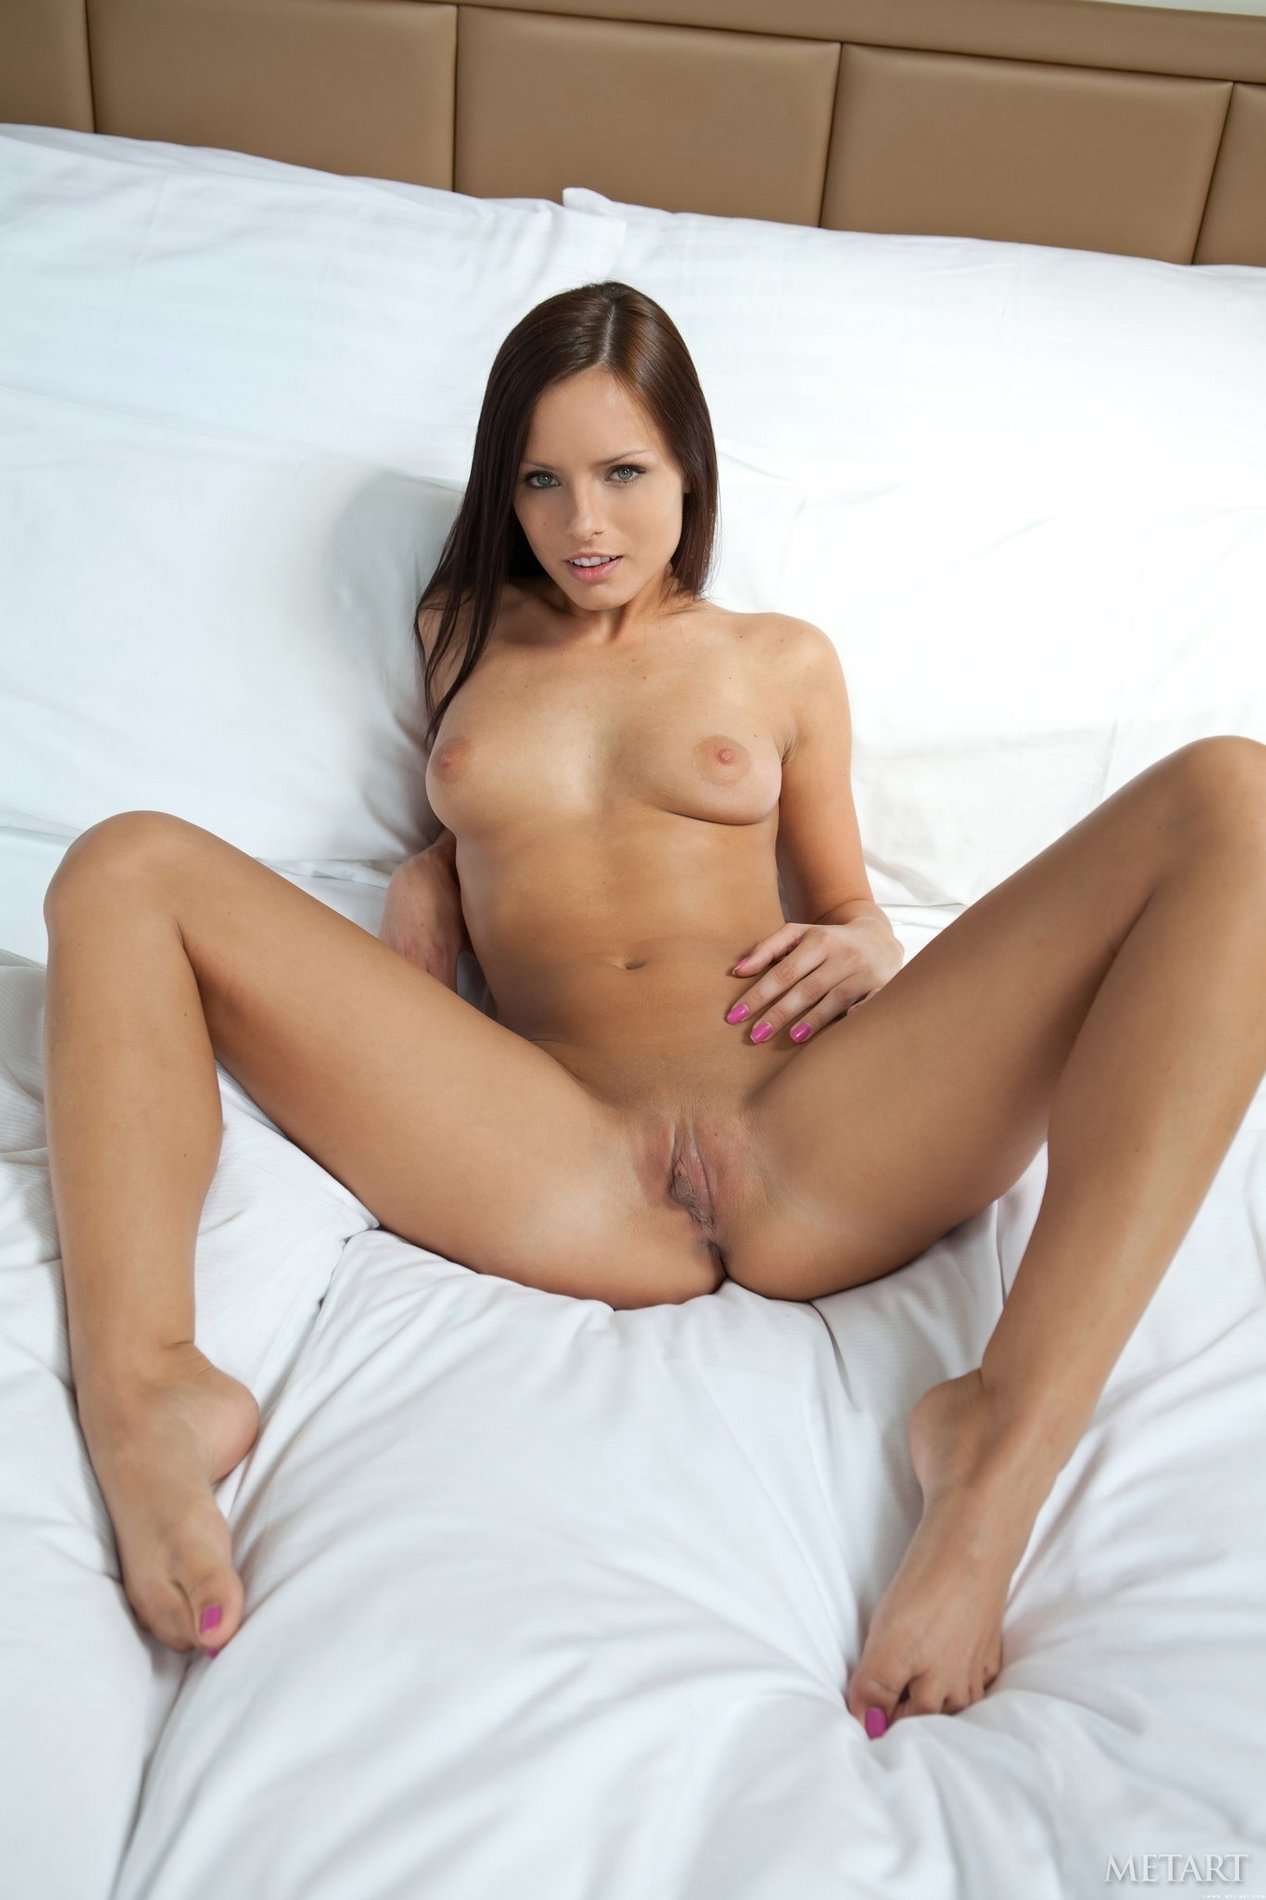 Brunette girl nude bed legs spread agree, the